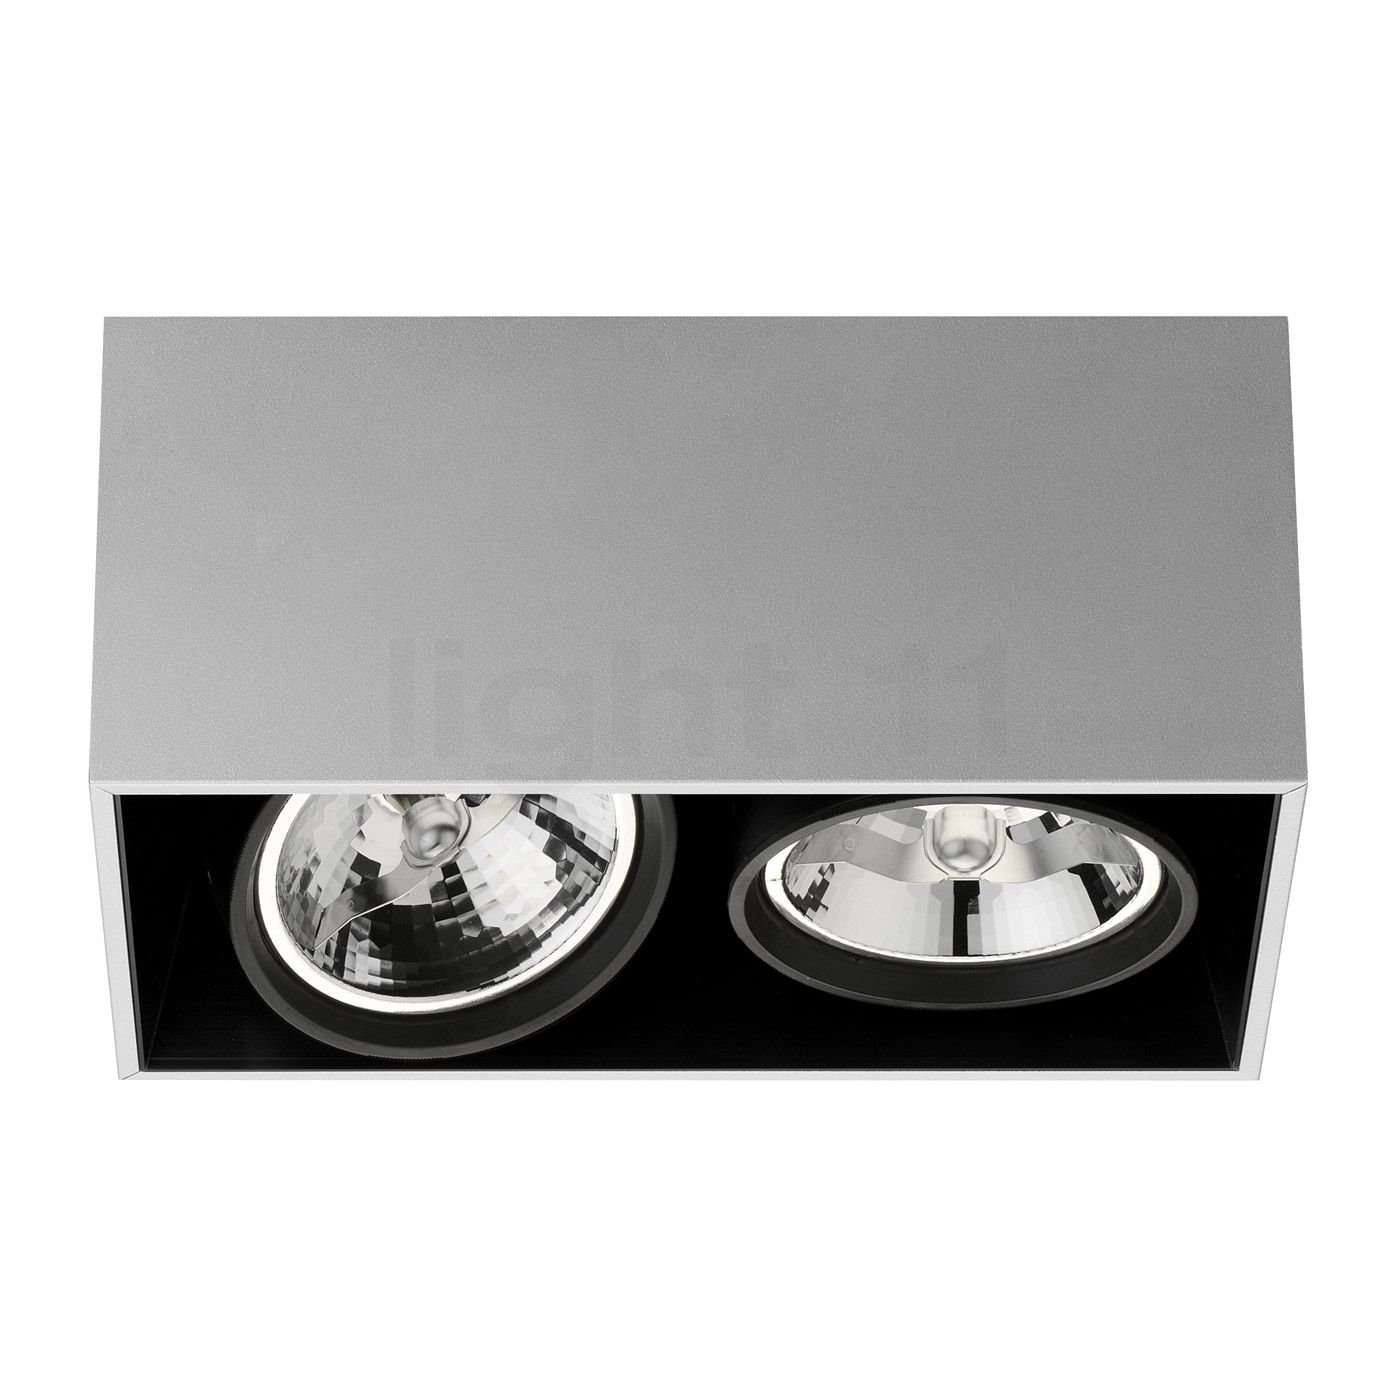 flos compass box 2 h135 qr111 surface mounted spotlights. Black Bedroom Furniture Sets. Home Design Ideas